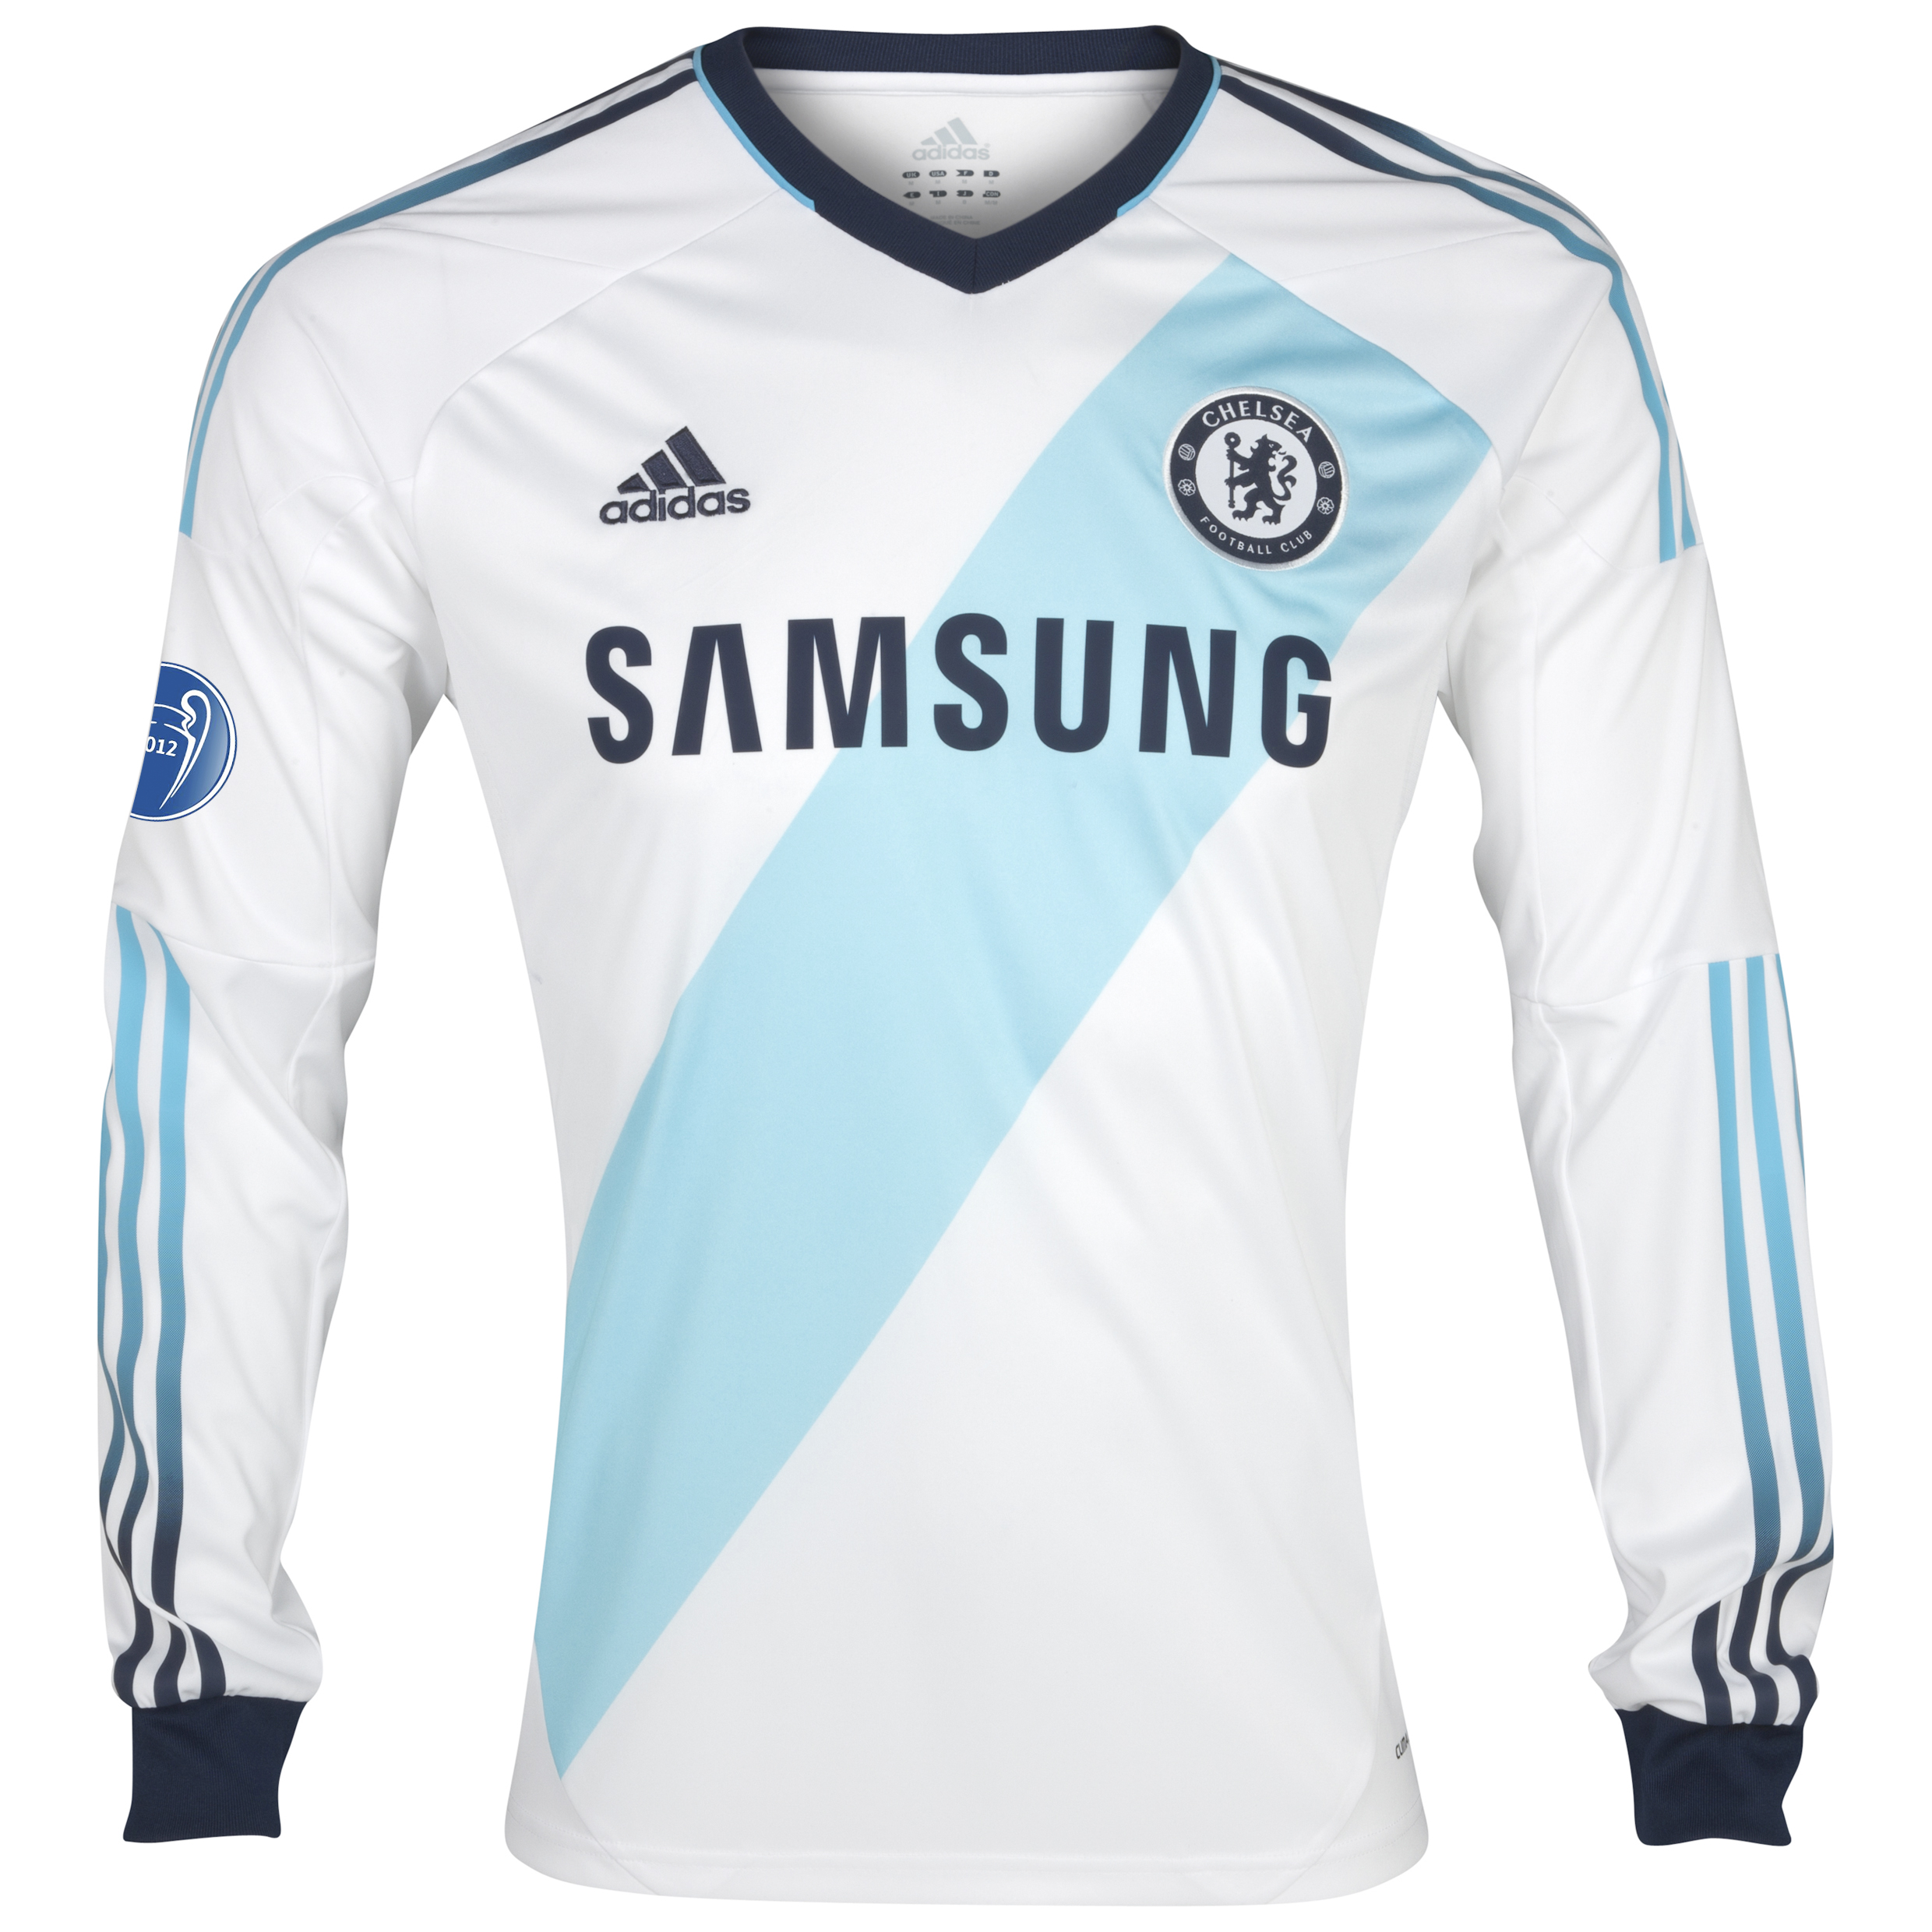 Chelsea UEFA Champions League Away Shirt 2012/13 - Long Sleeved with Winners Badge